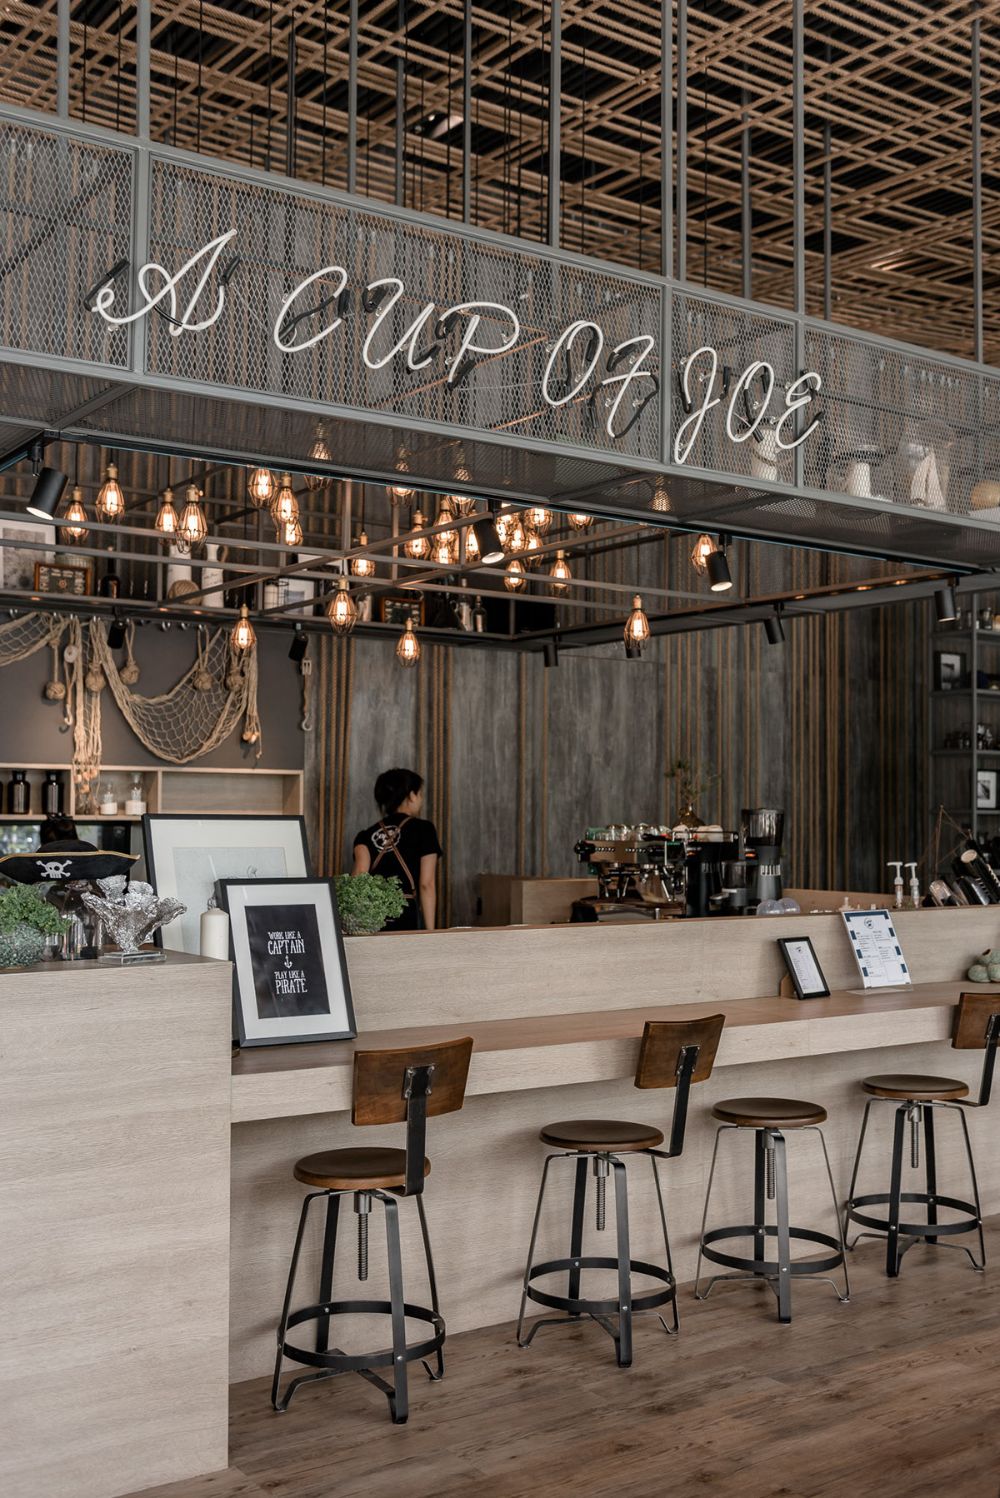 Captain M Café by N7A Architects